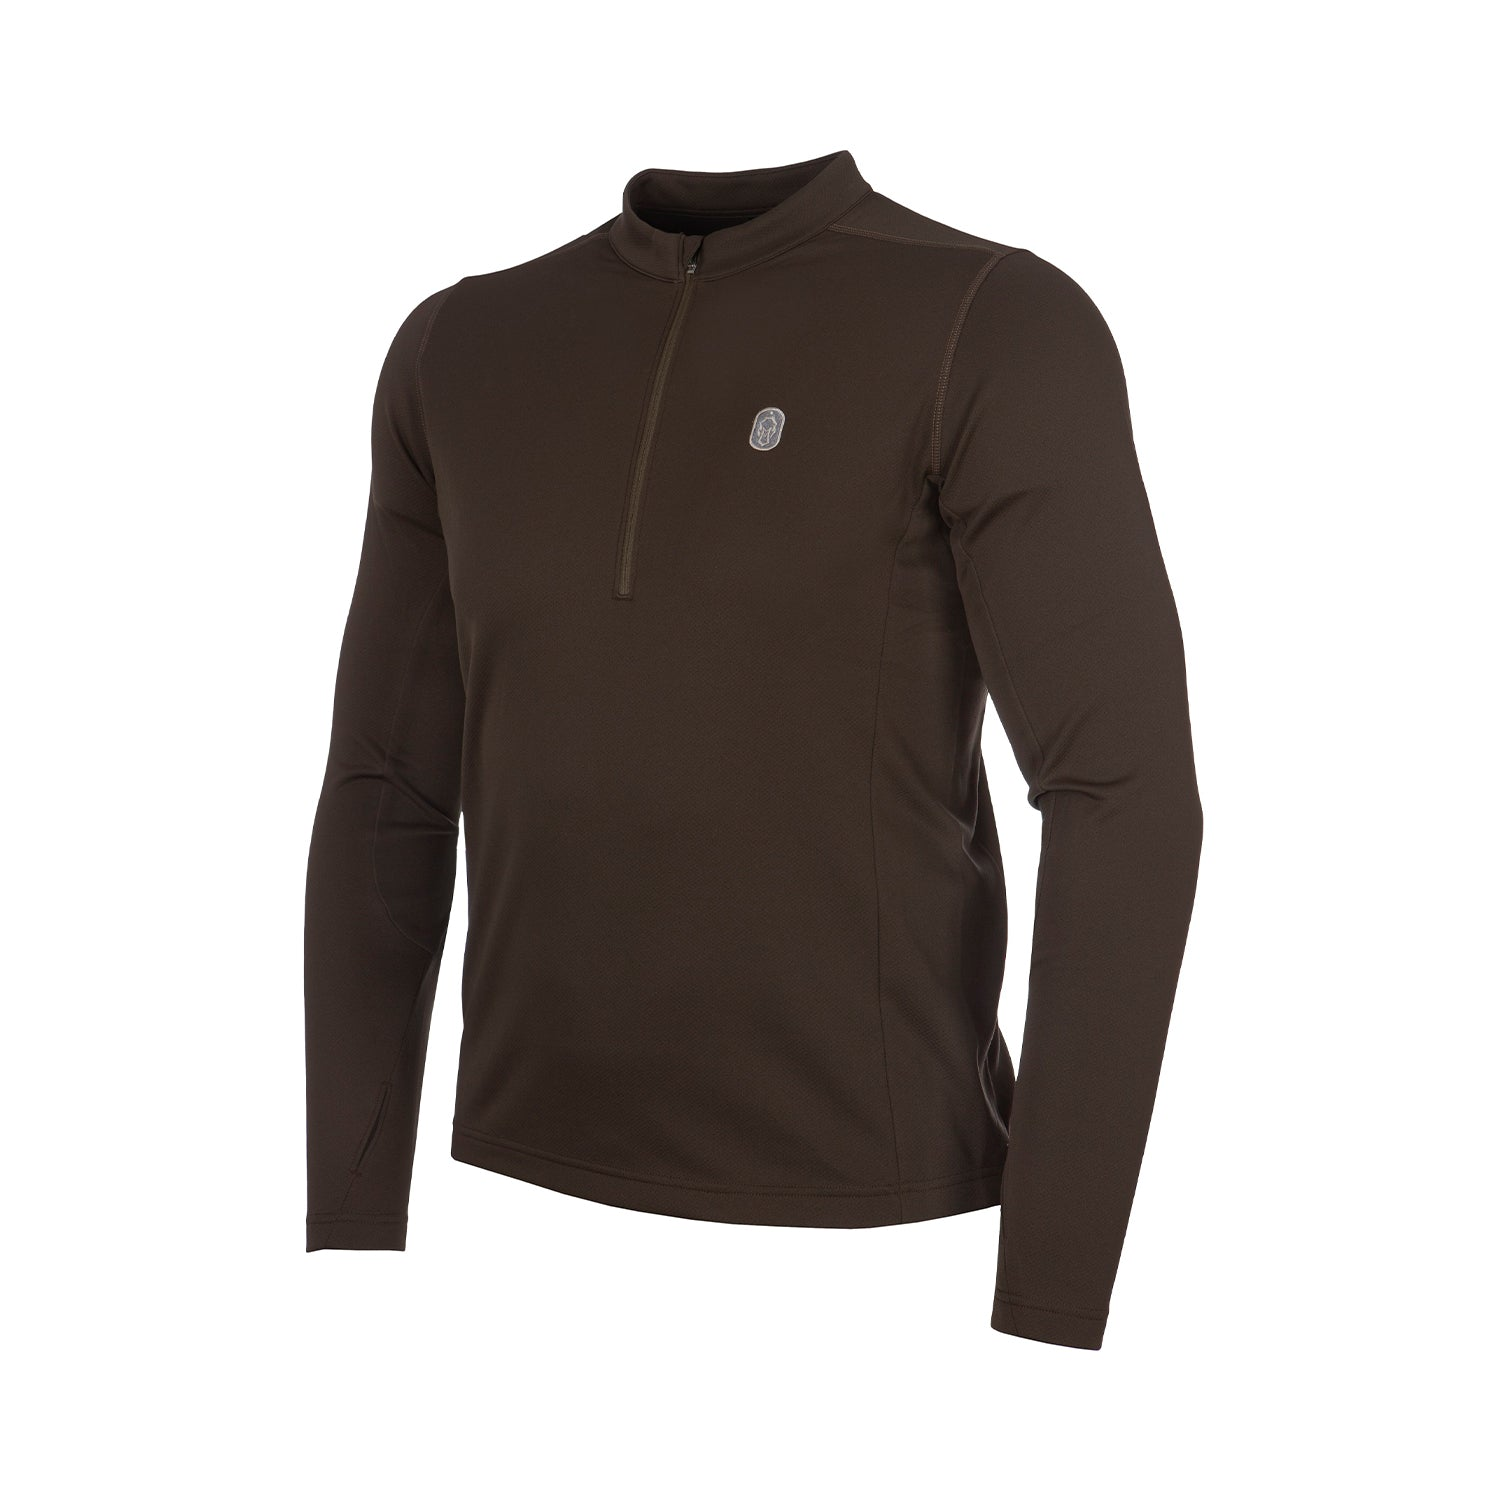 Power-F Base 1/4 Zip Top